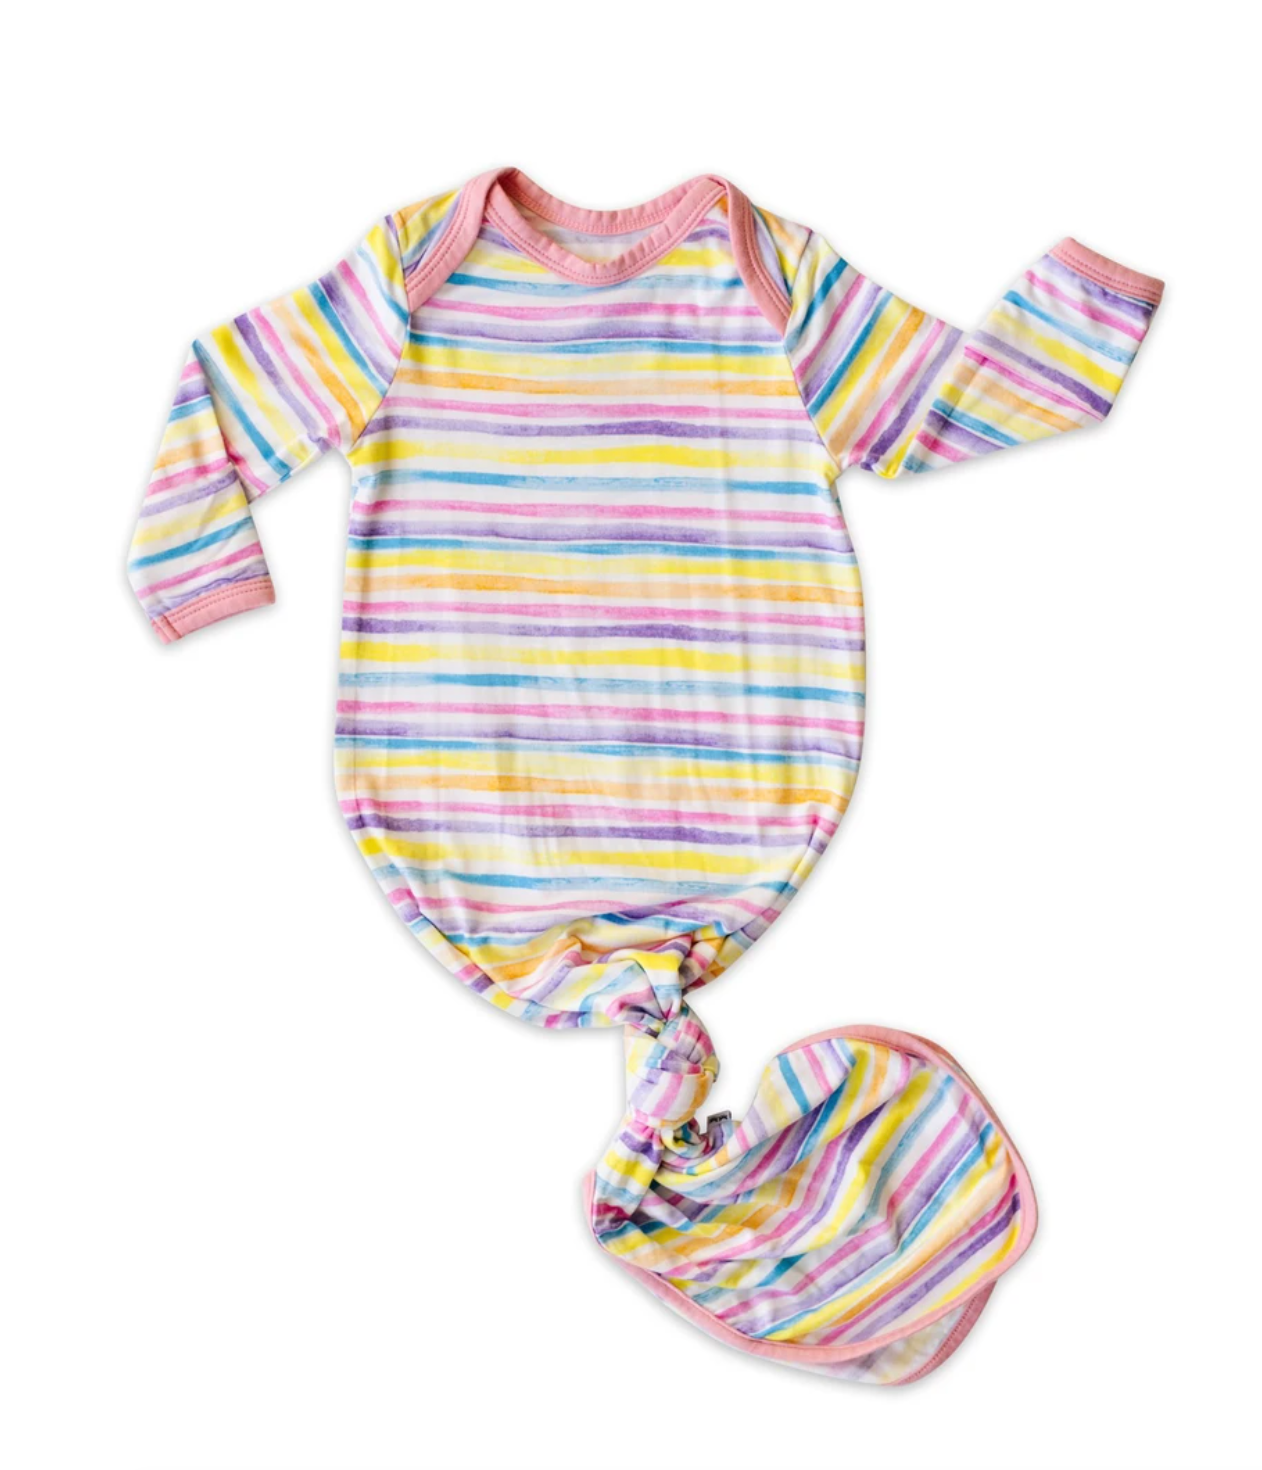 Sunrise Stripe - Bamboo Viscose Infant Knotted Gown